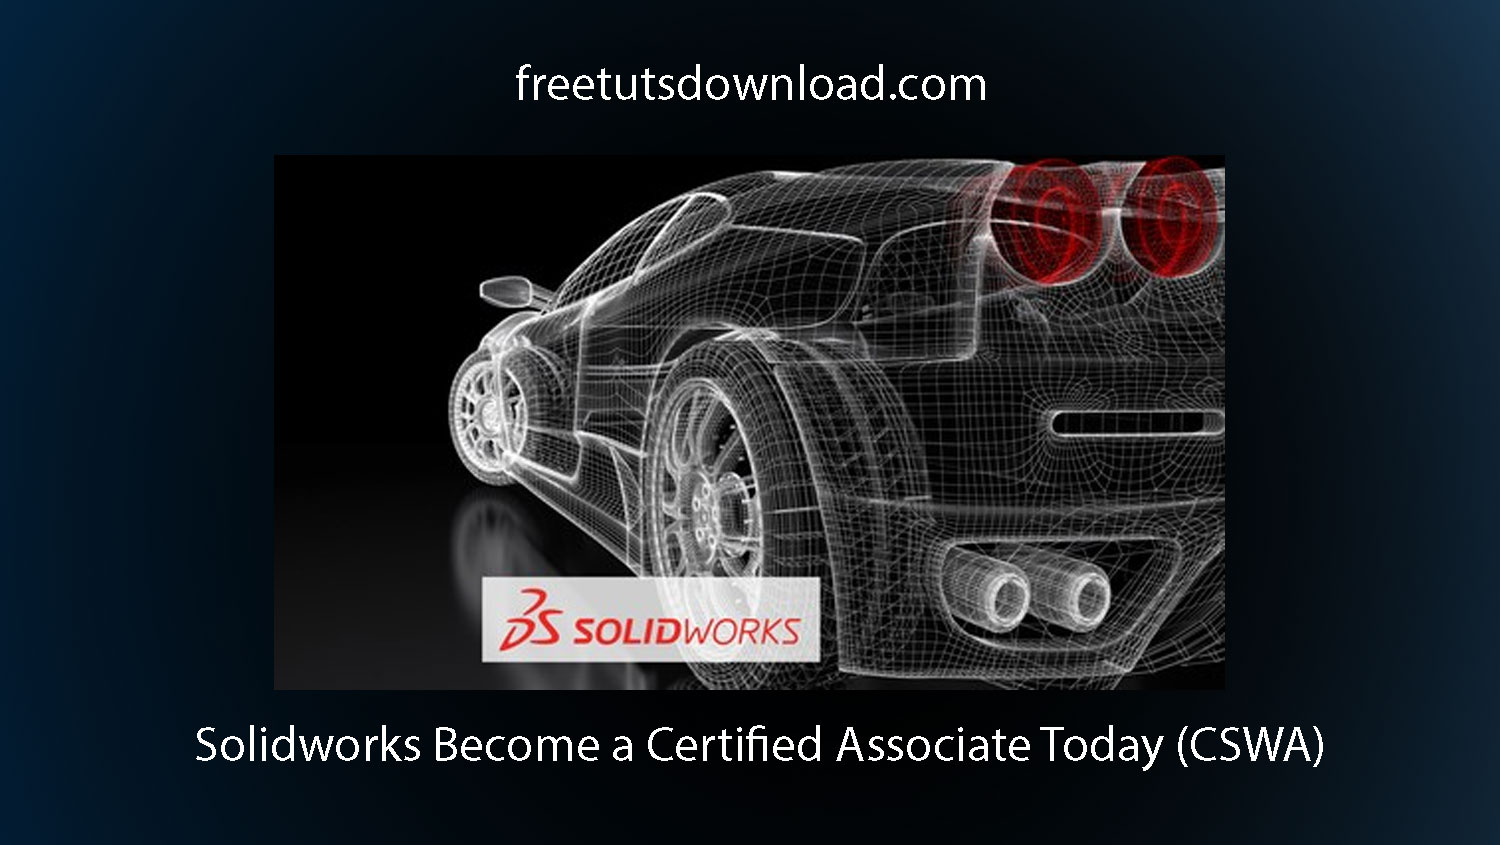 Solidworks Become a Certified Associate Today (CSWA)